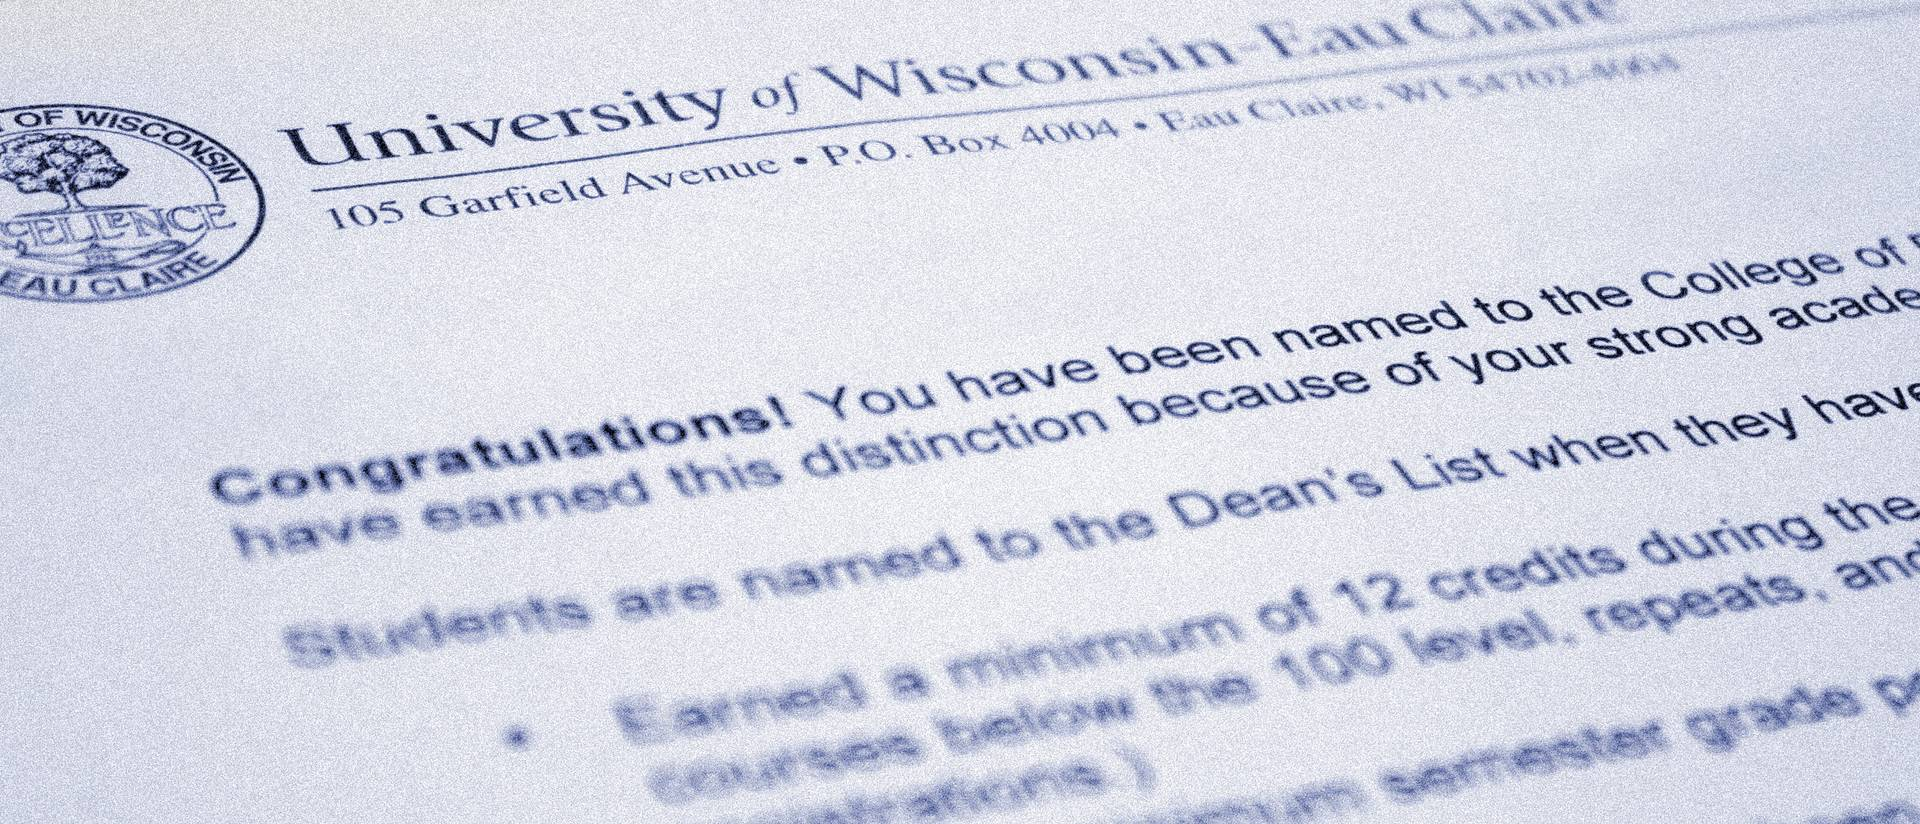 Photo of Dean's List congratulatory letter